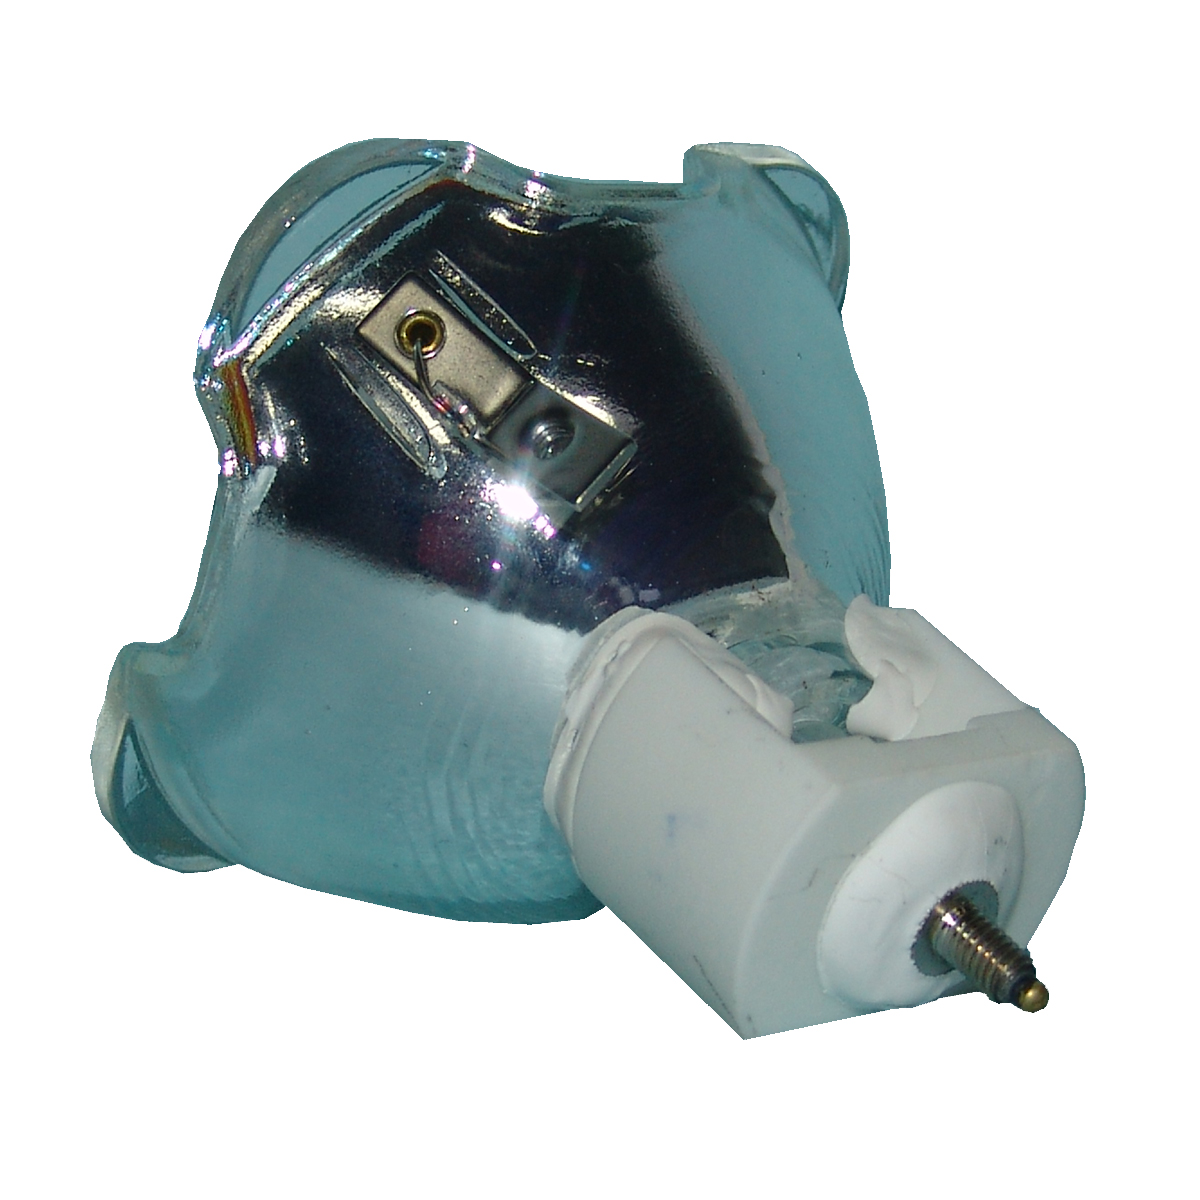 Lutema Economy for Dukane ImagePro 8918 Projector Lamp (Bulb Only) - image 4 of 5